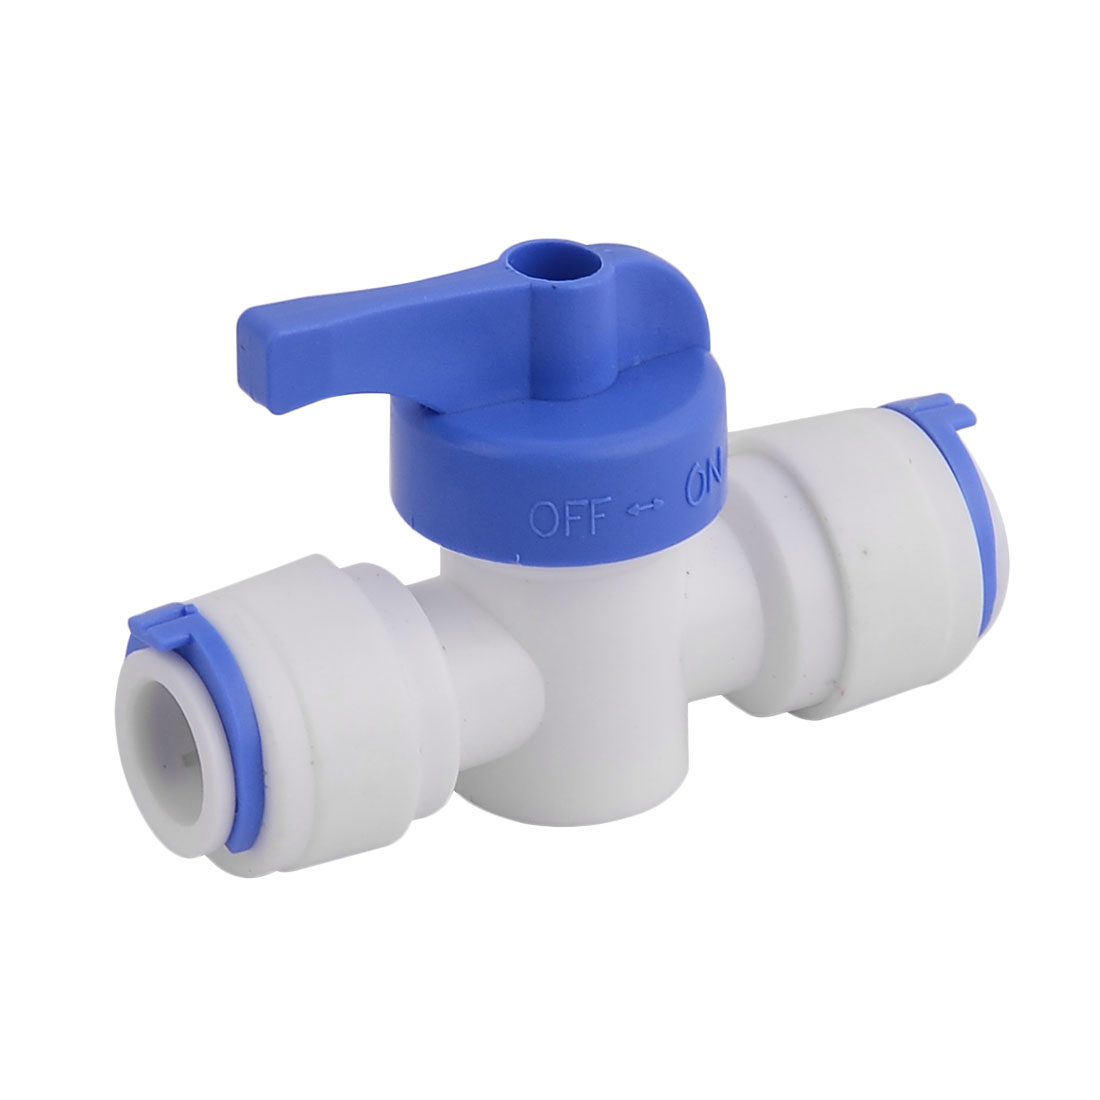 Home Plastic Water Filter Purifier Purifying Ball Valve Connector Dispenser by